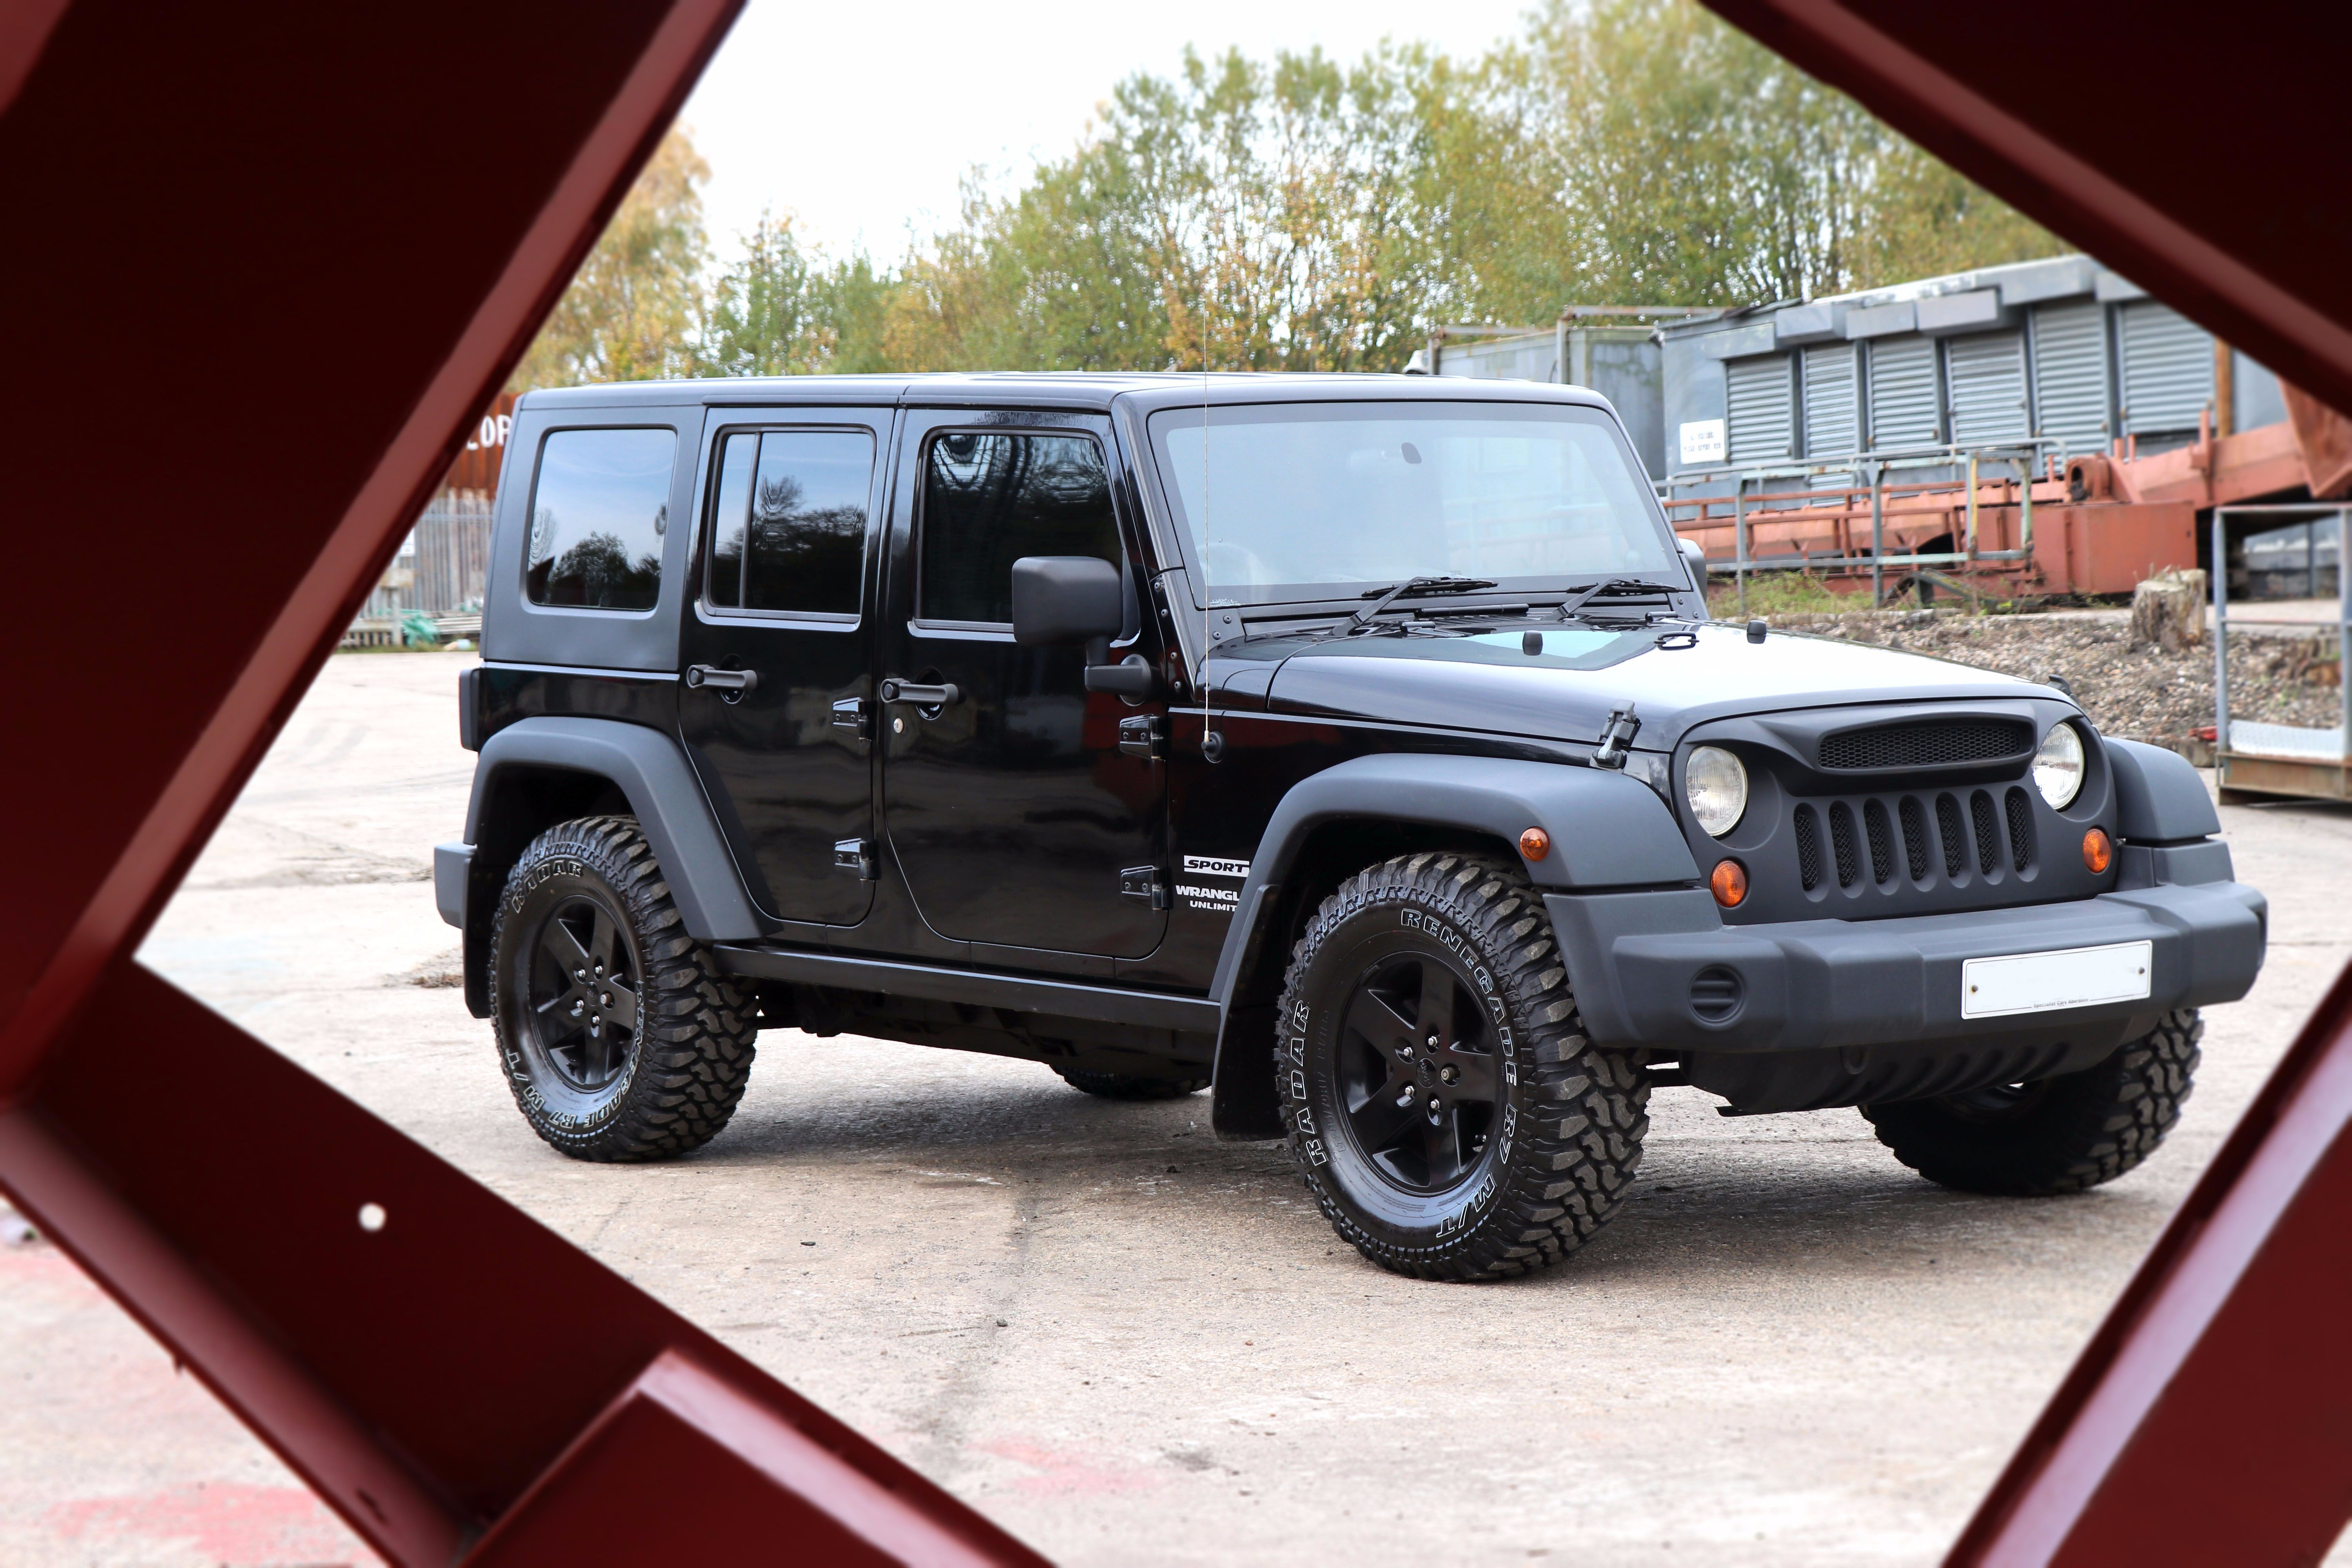 Introducing our SEEKER All Black Edition Jeep Wrangler, styled by Seeker Styling!